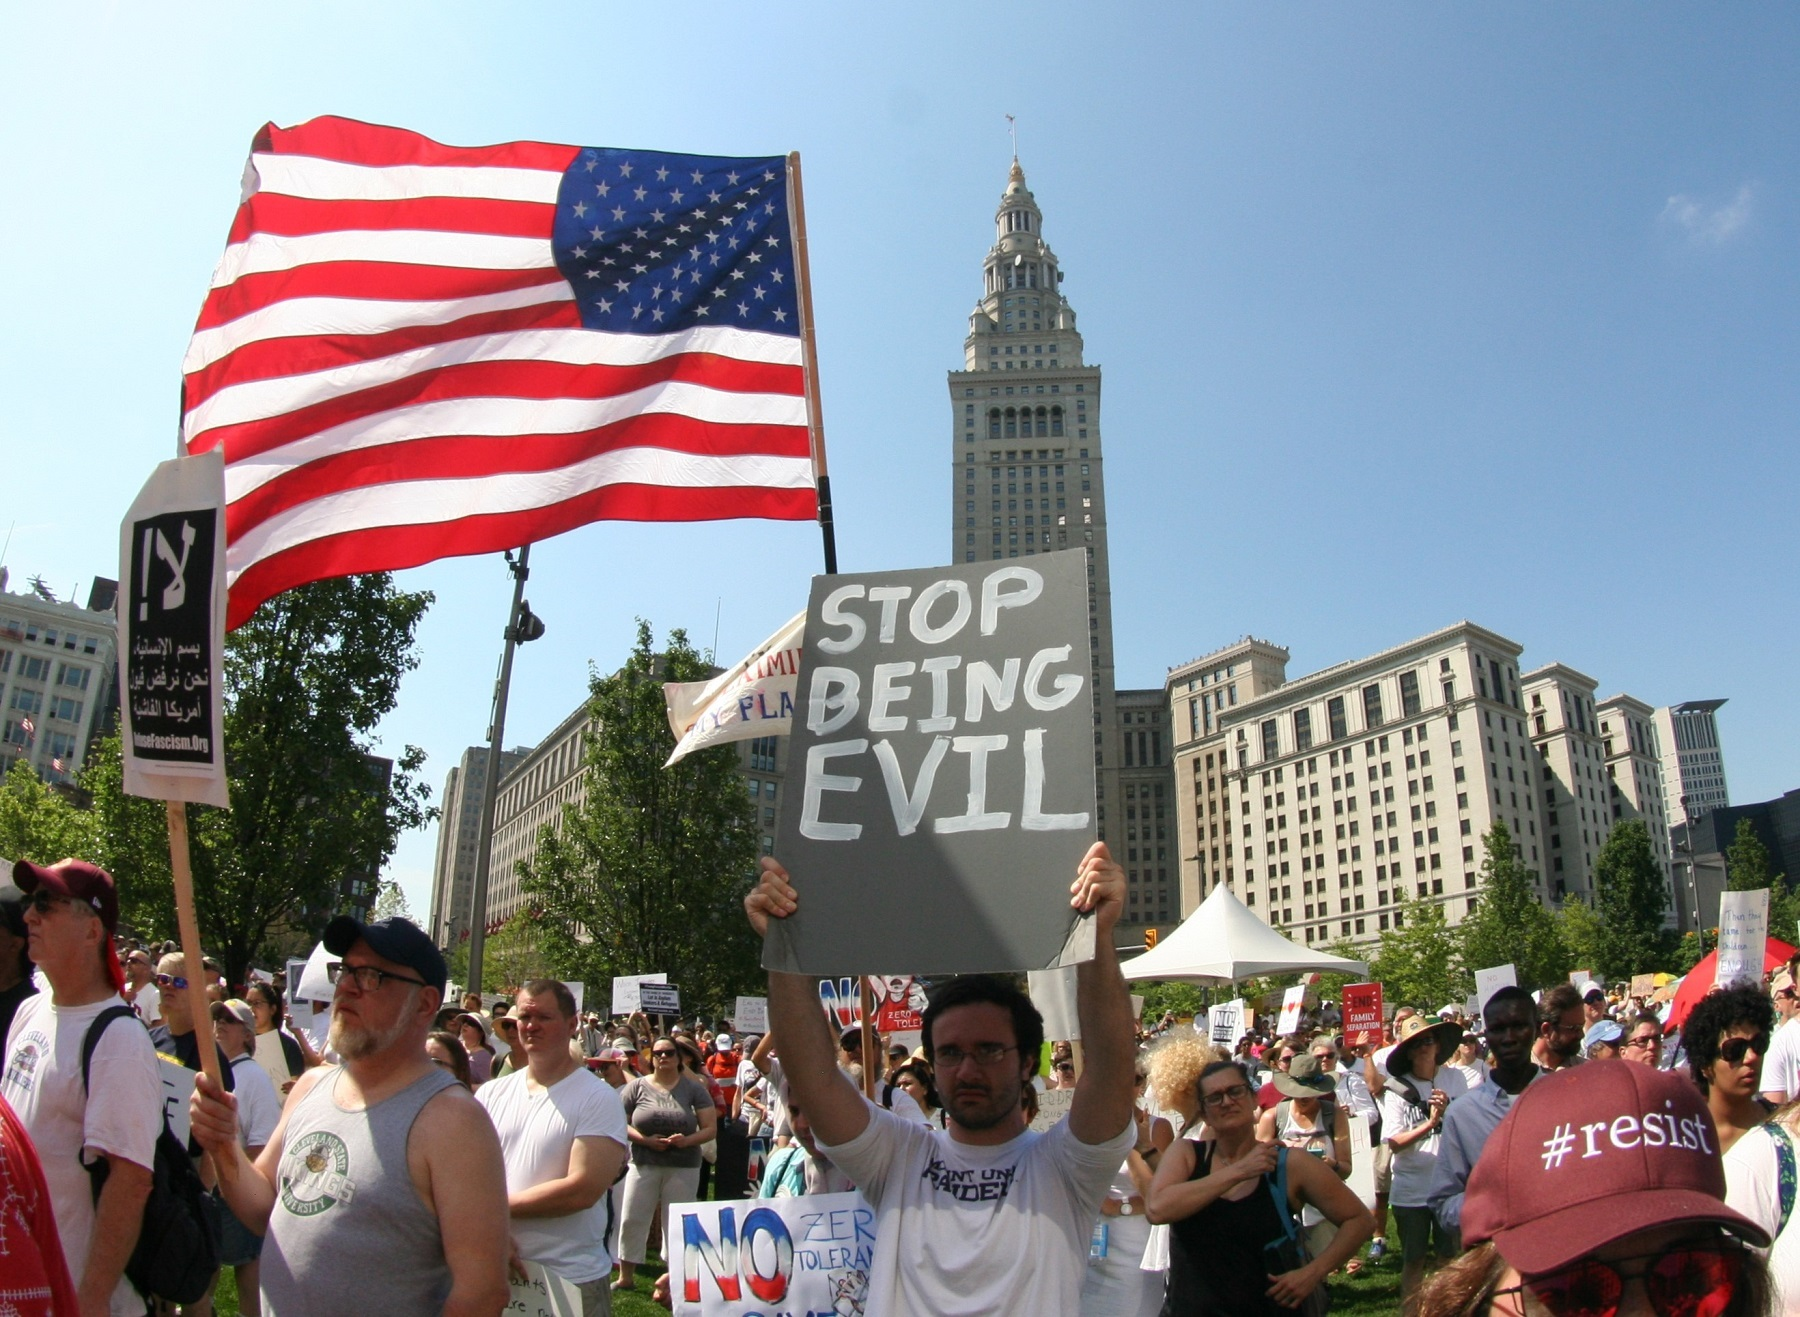 Rally to end Family Separation Cleveland daab0